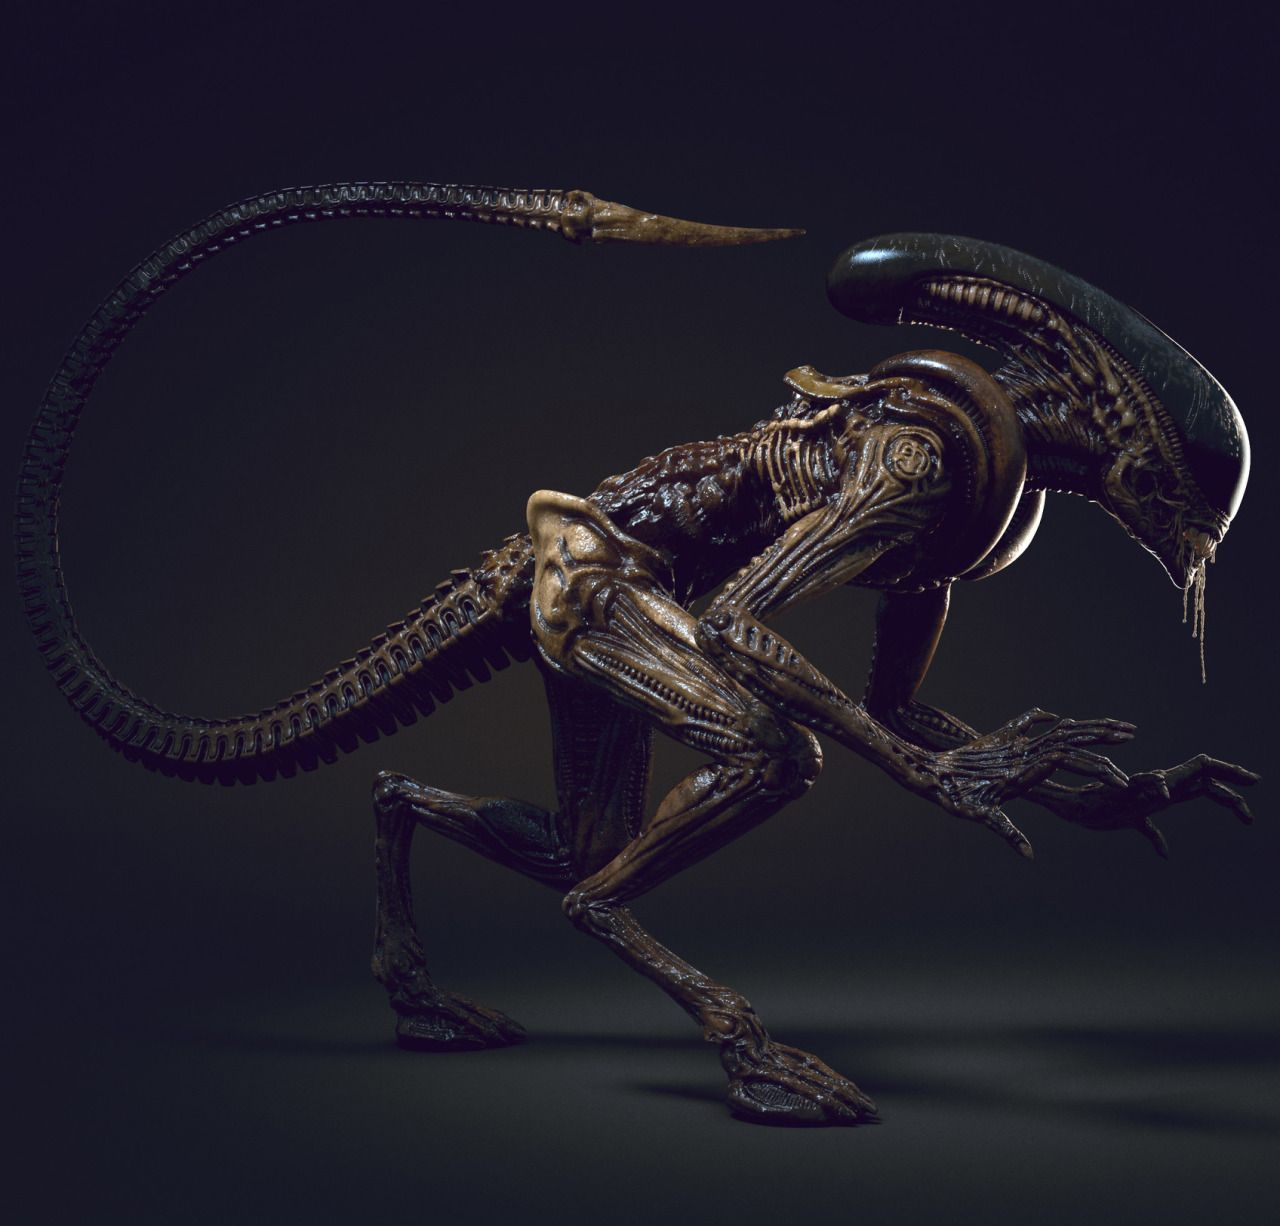 Alien 3 Movie: Alien Runner - Alien Fan Art By Alex Vasin